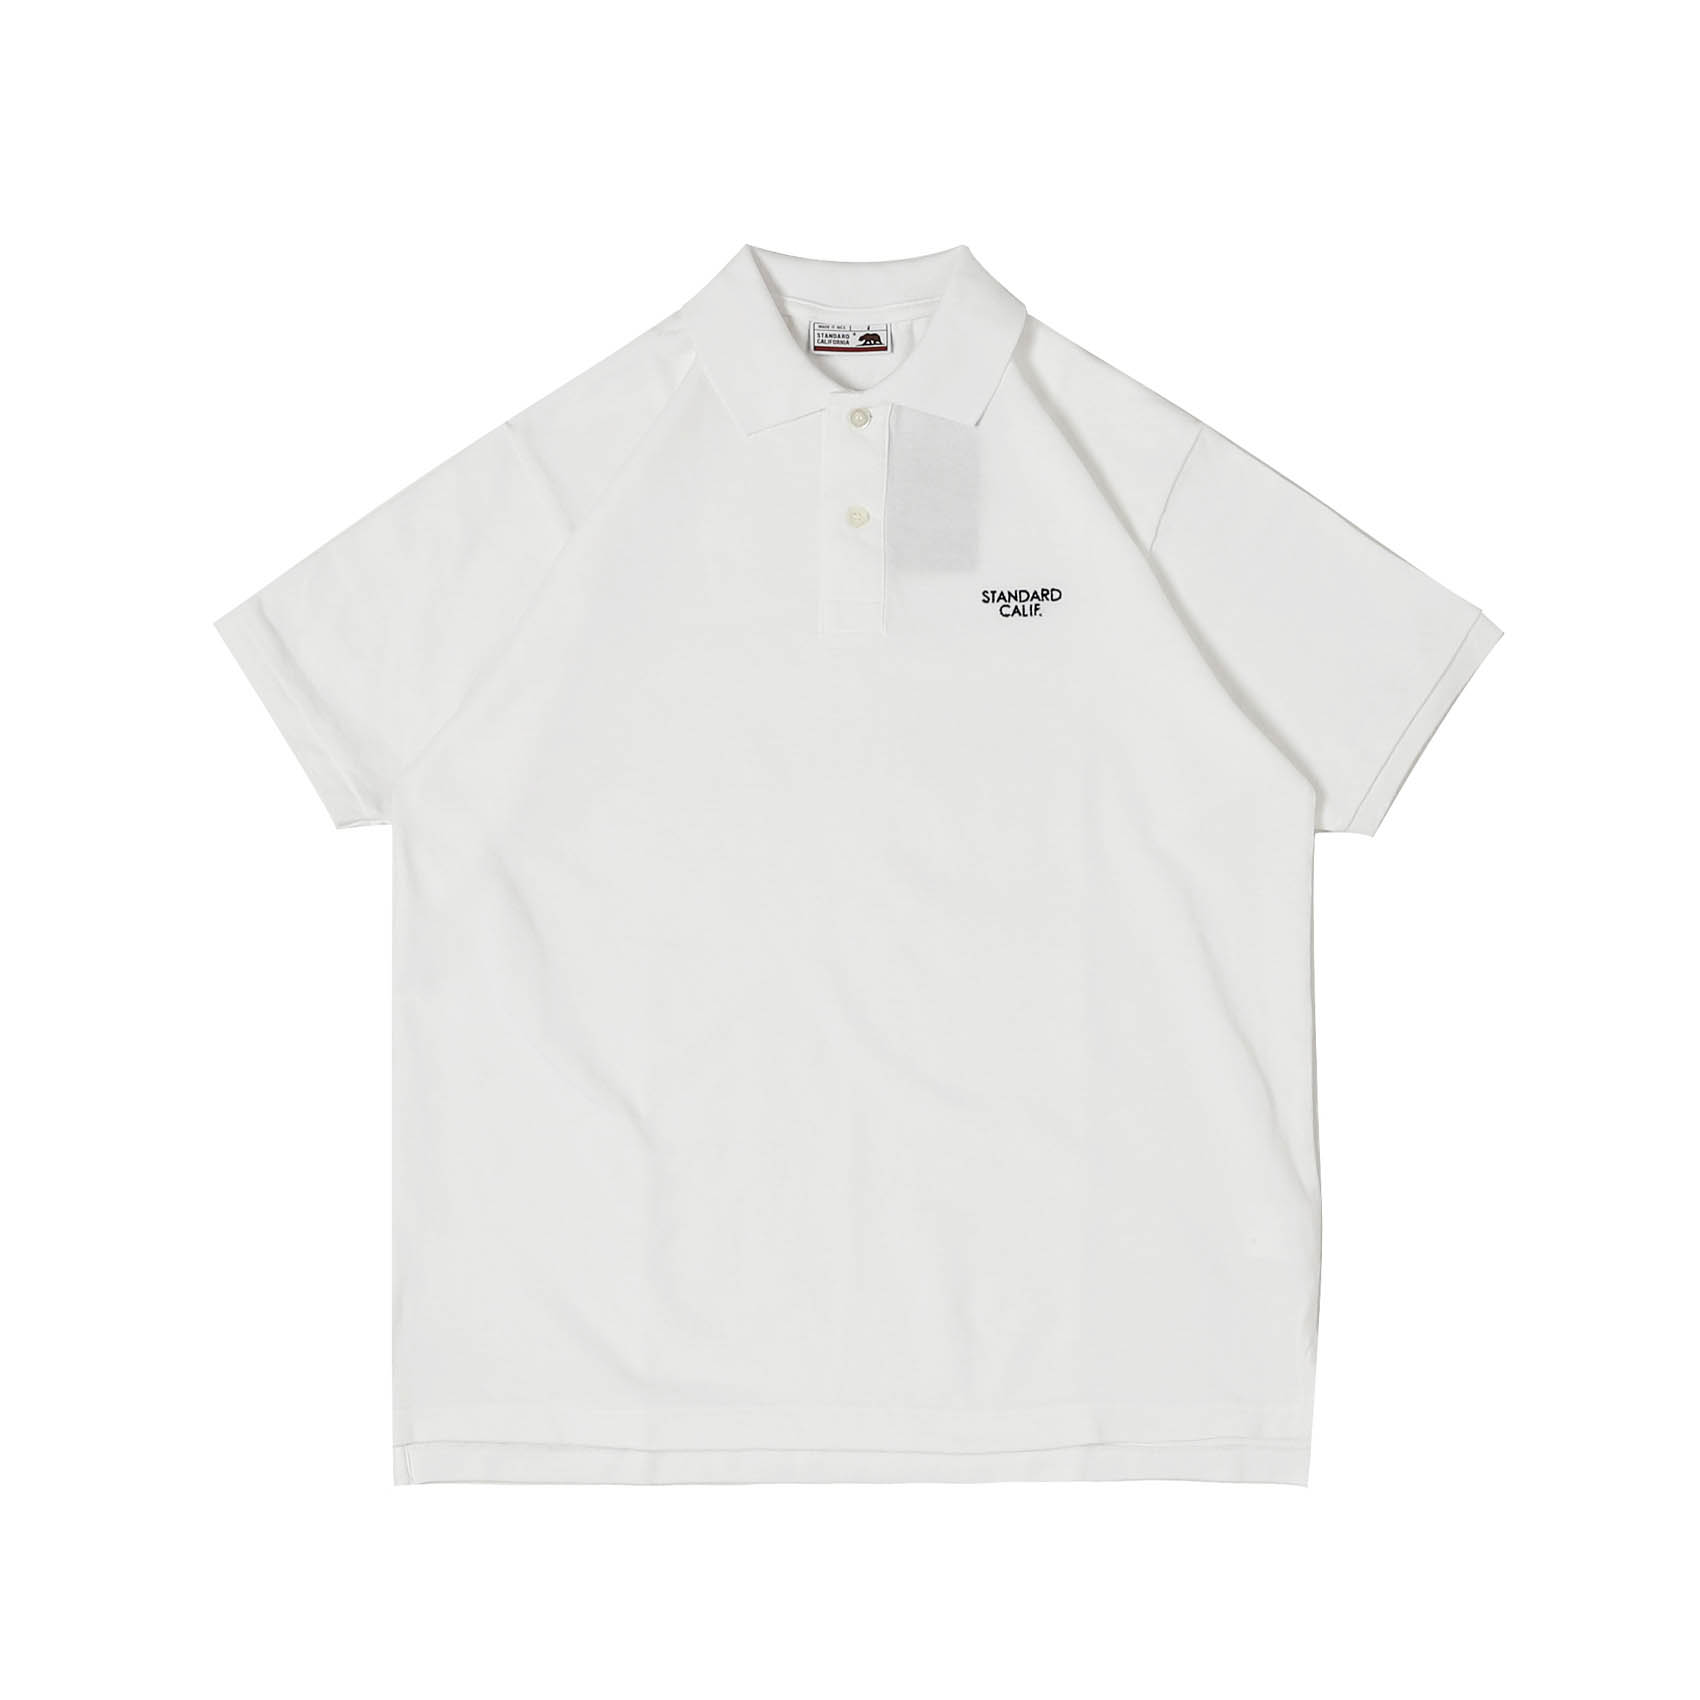 LOGO POLO SHIRT - WHITE